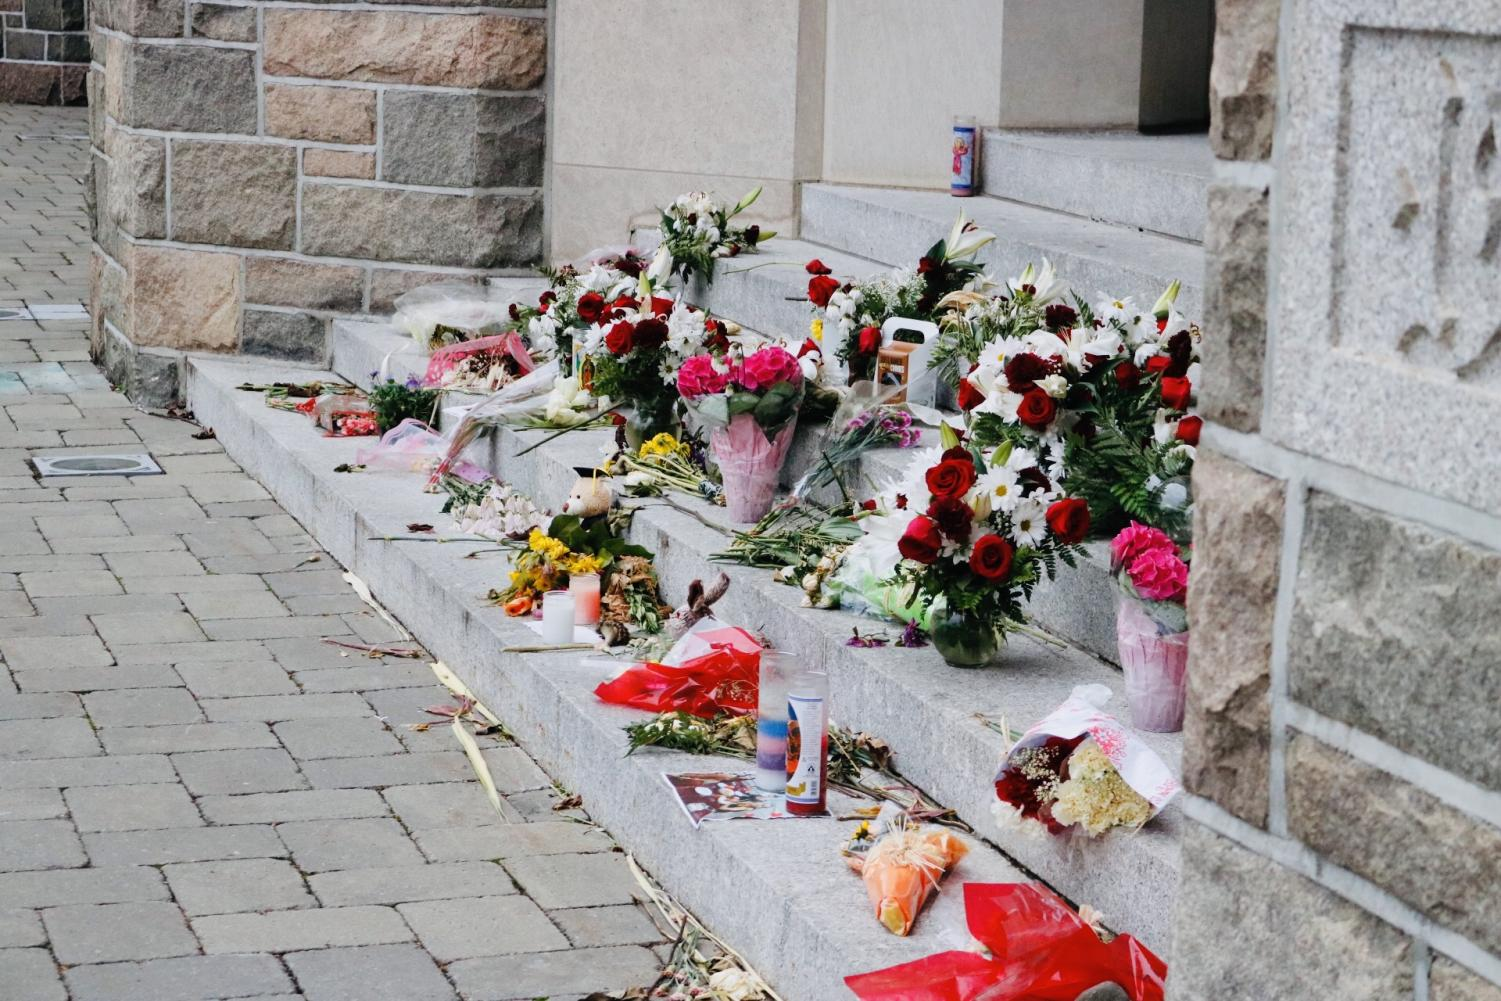 Students placed flowers and candles on the steps of Keating Hall to honor Sydney Monfries. (Julia Comerford/ The Fordham Ram)